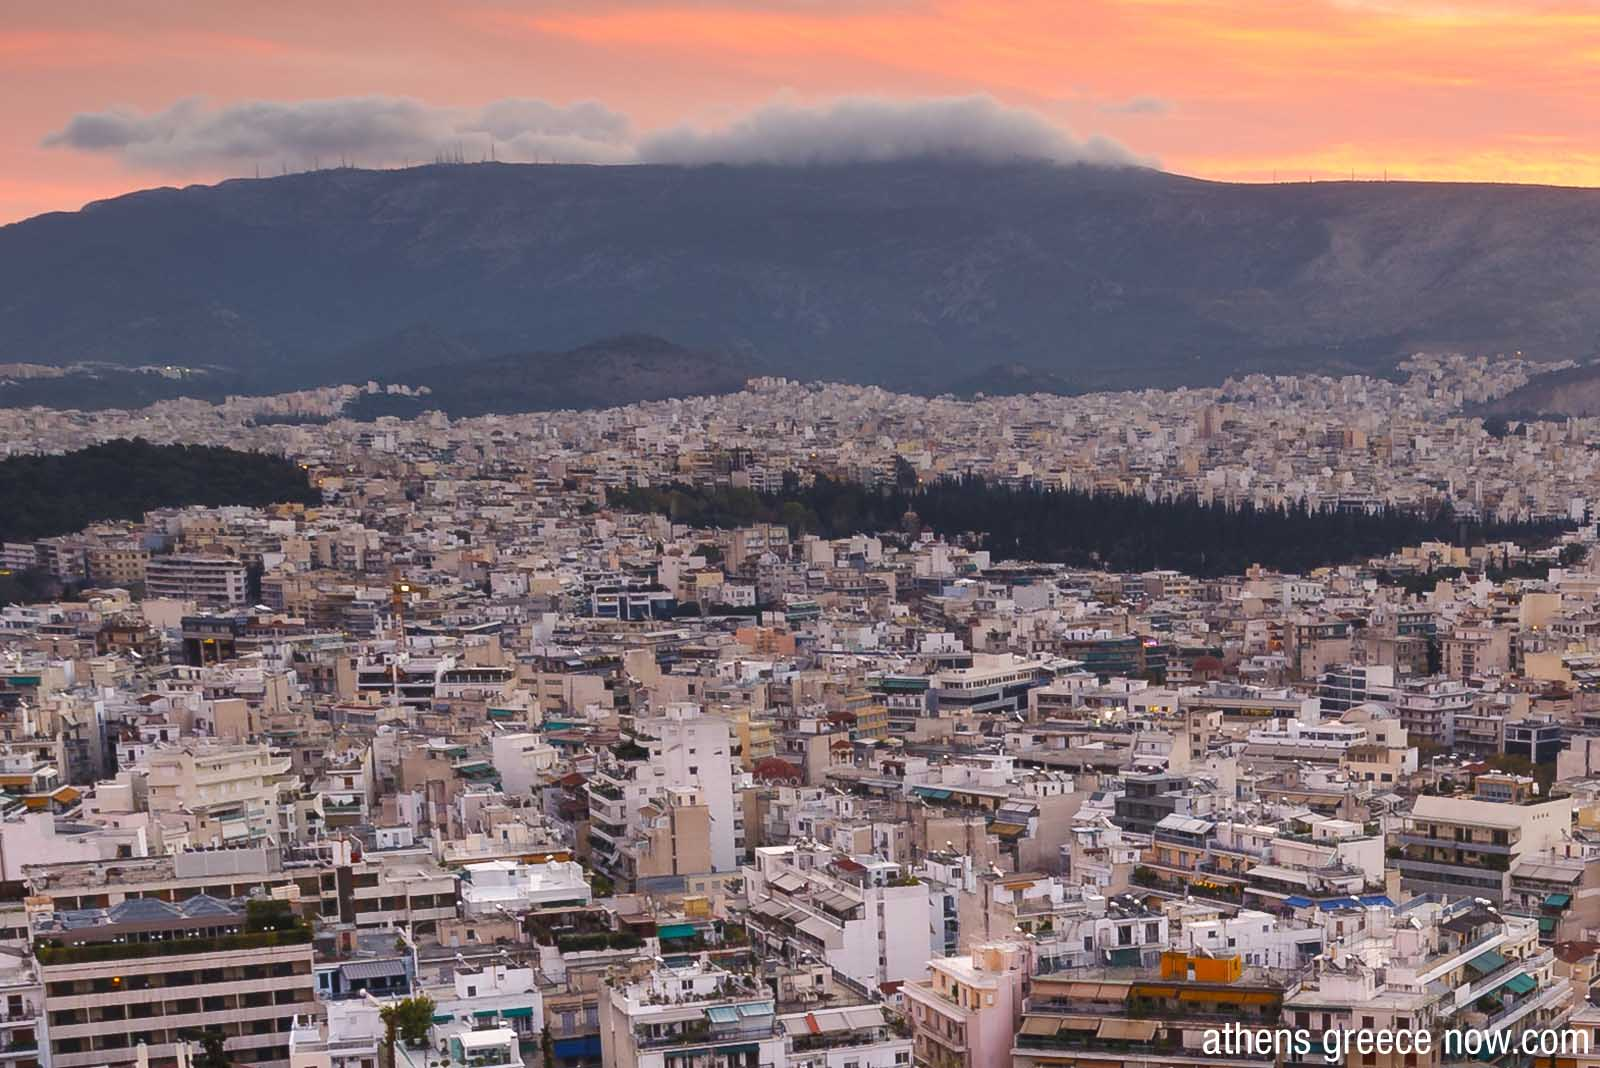 Enlarged - Athens Greece and Hymettus